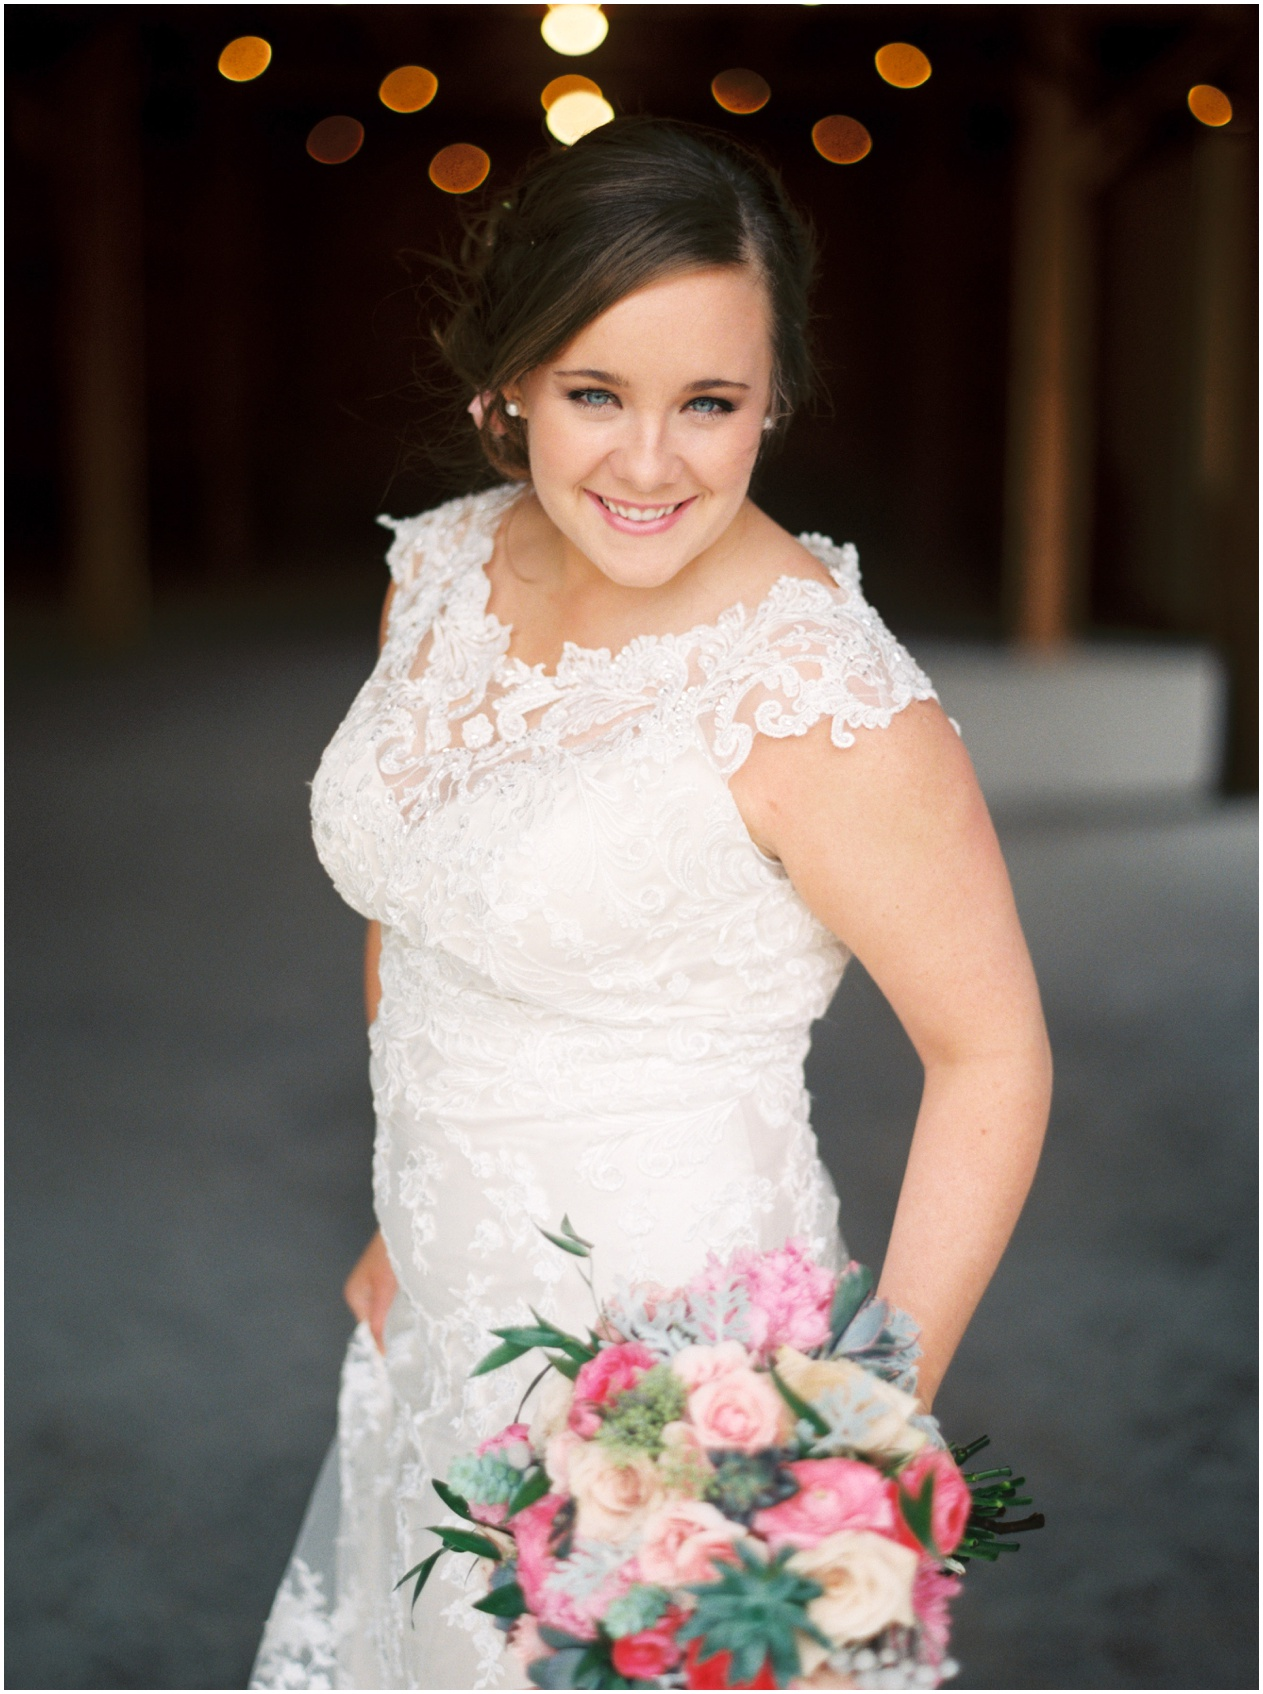 Sarah Best Photography - Claire's Bridals - The Amish Barn at Edge-4_STP.jpg